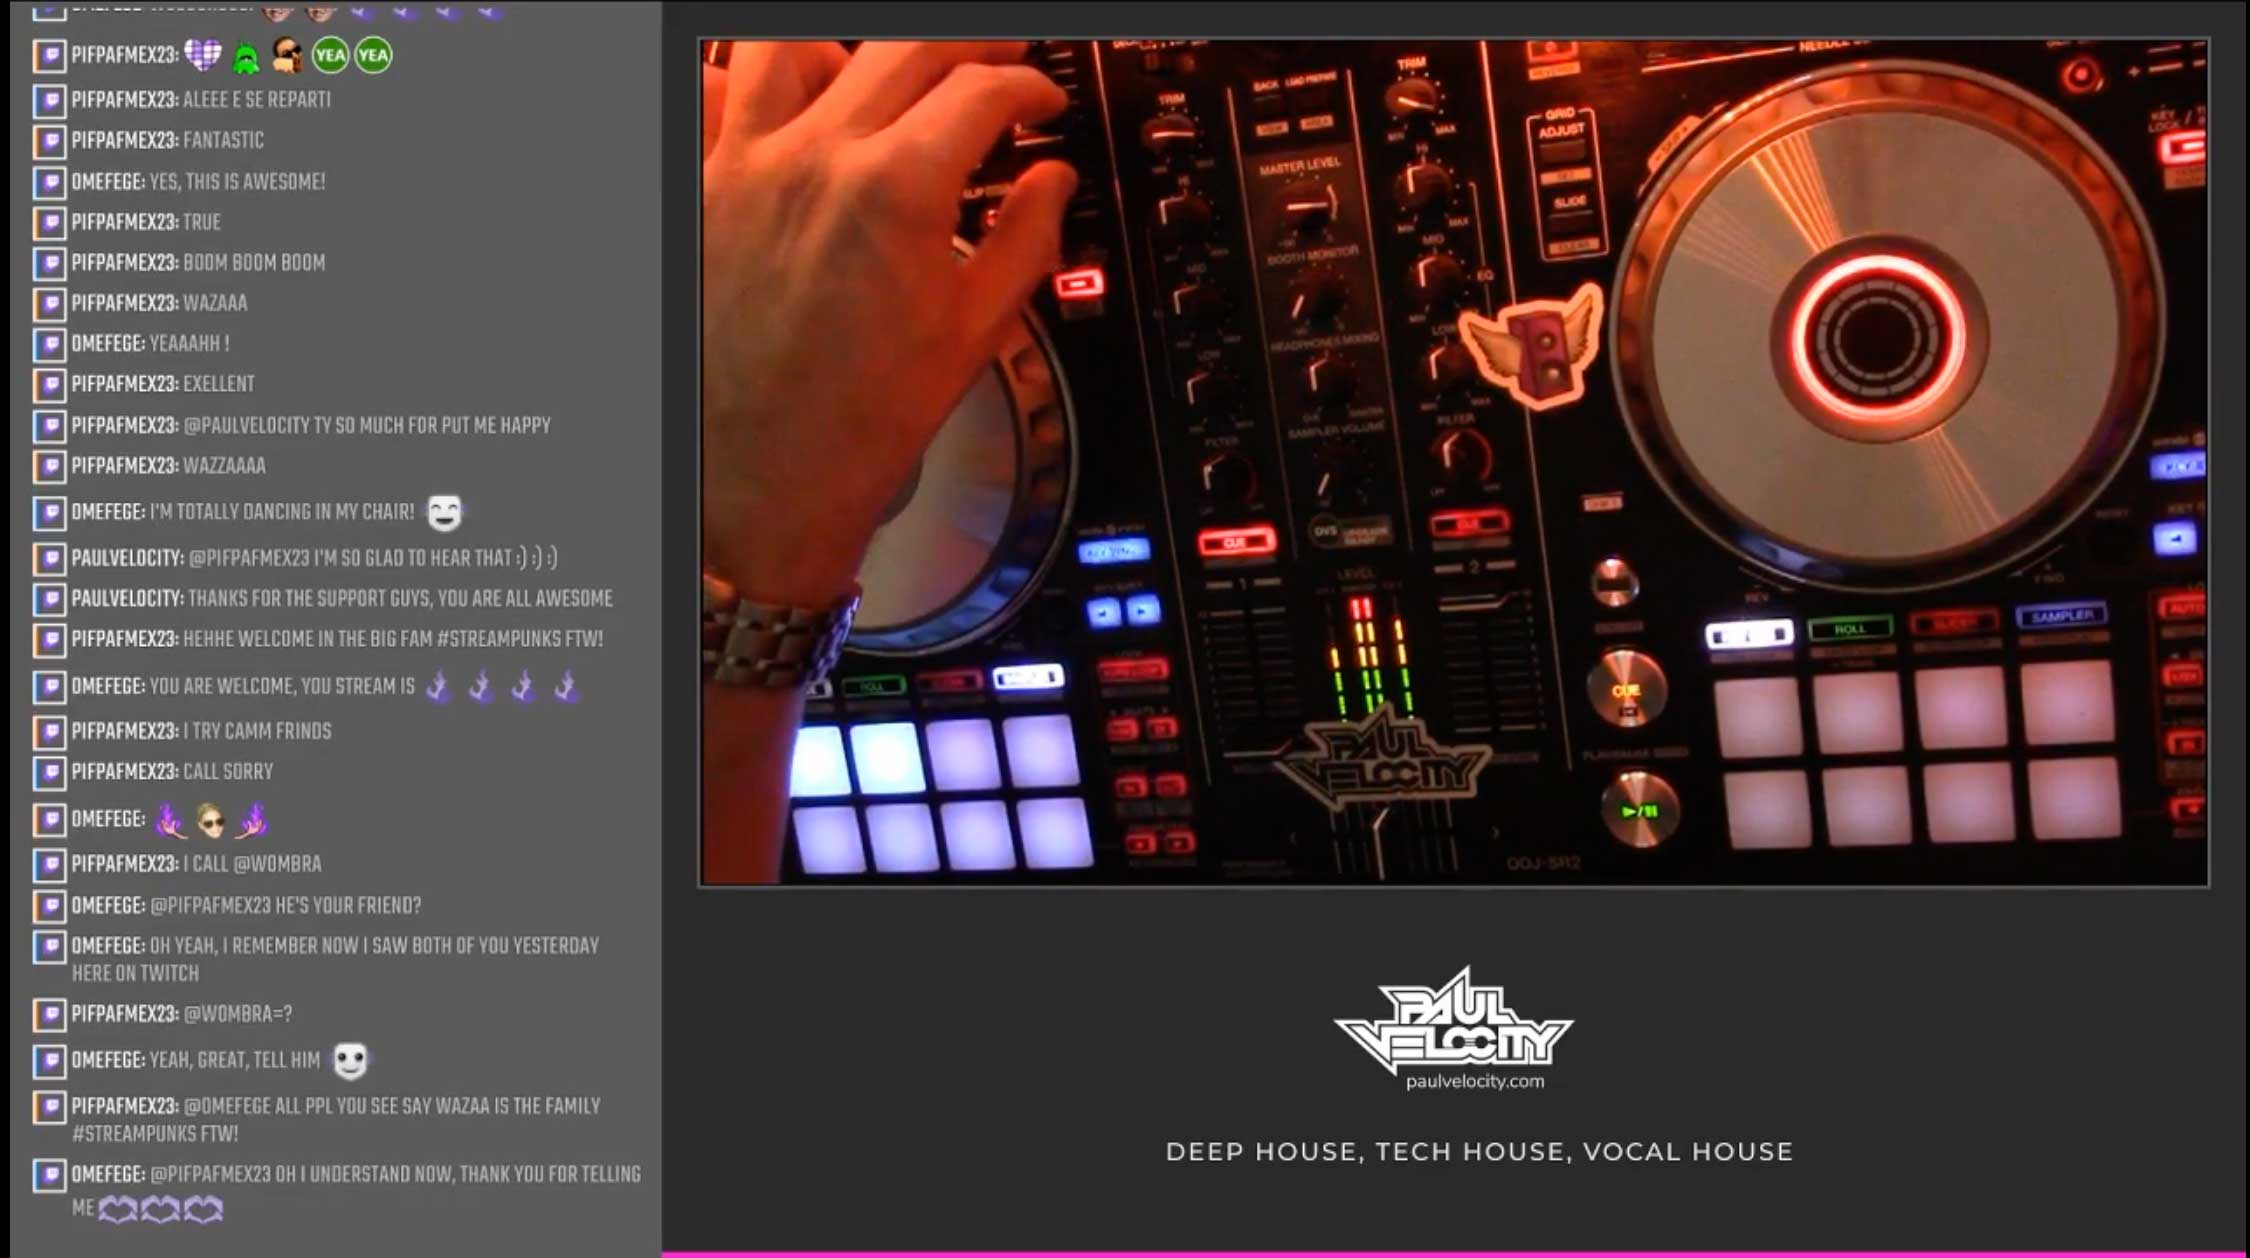 Screenshot of an episode of HouseBound showing a birds eye view of DJ mixing equipment